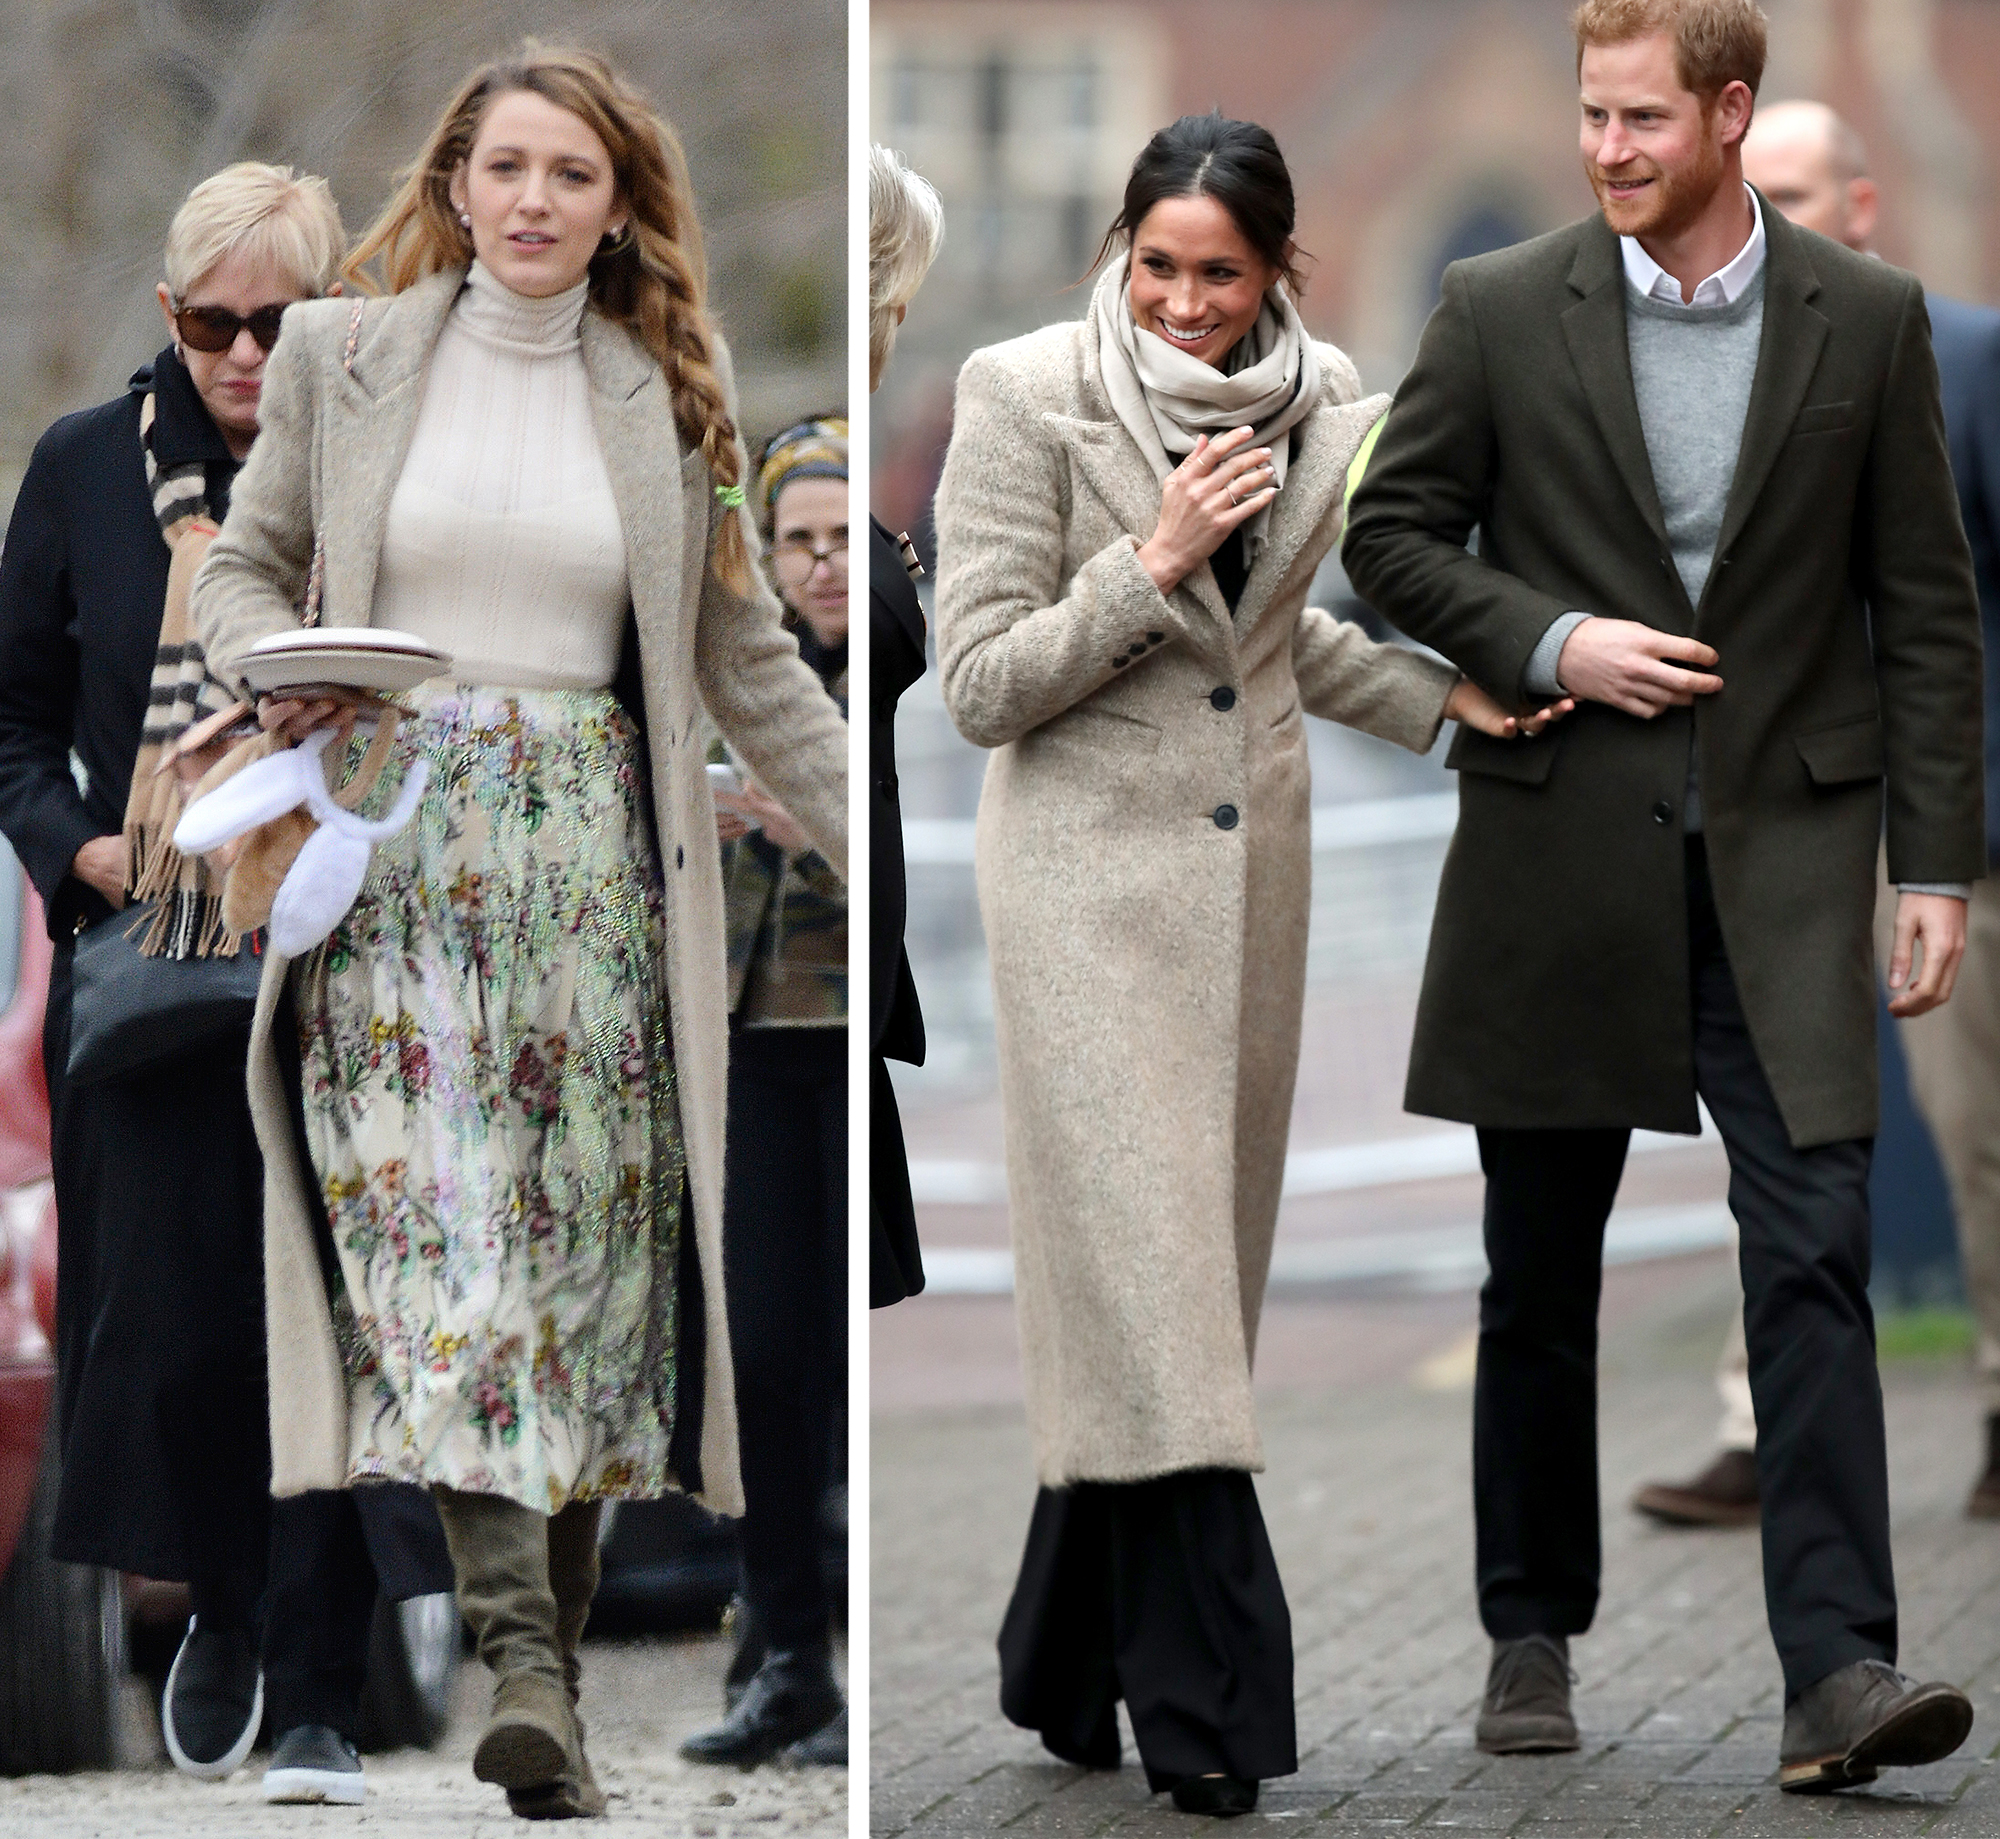 <p>Blake Lively and Meghan Markle</p>